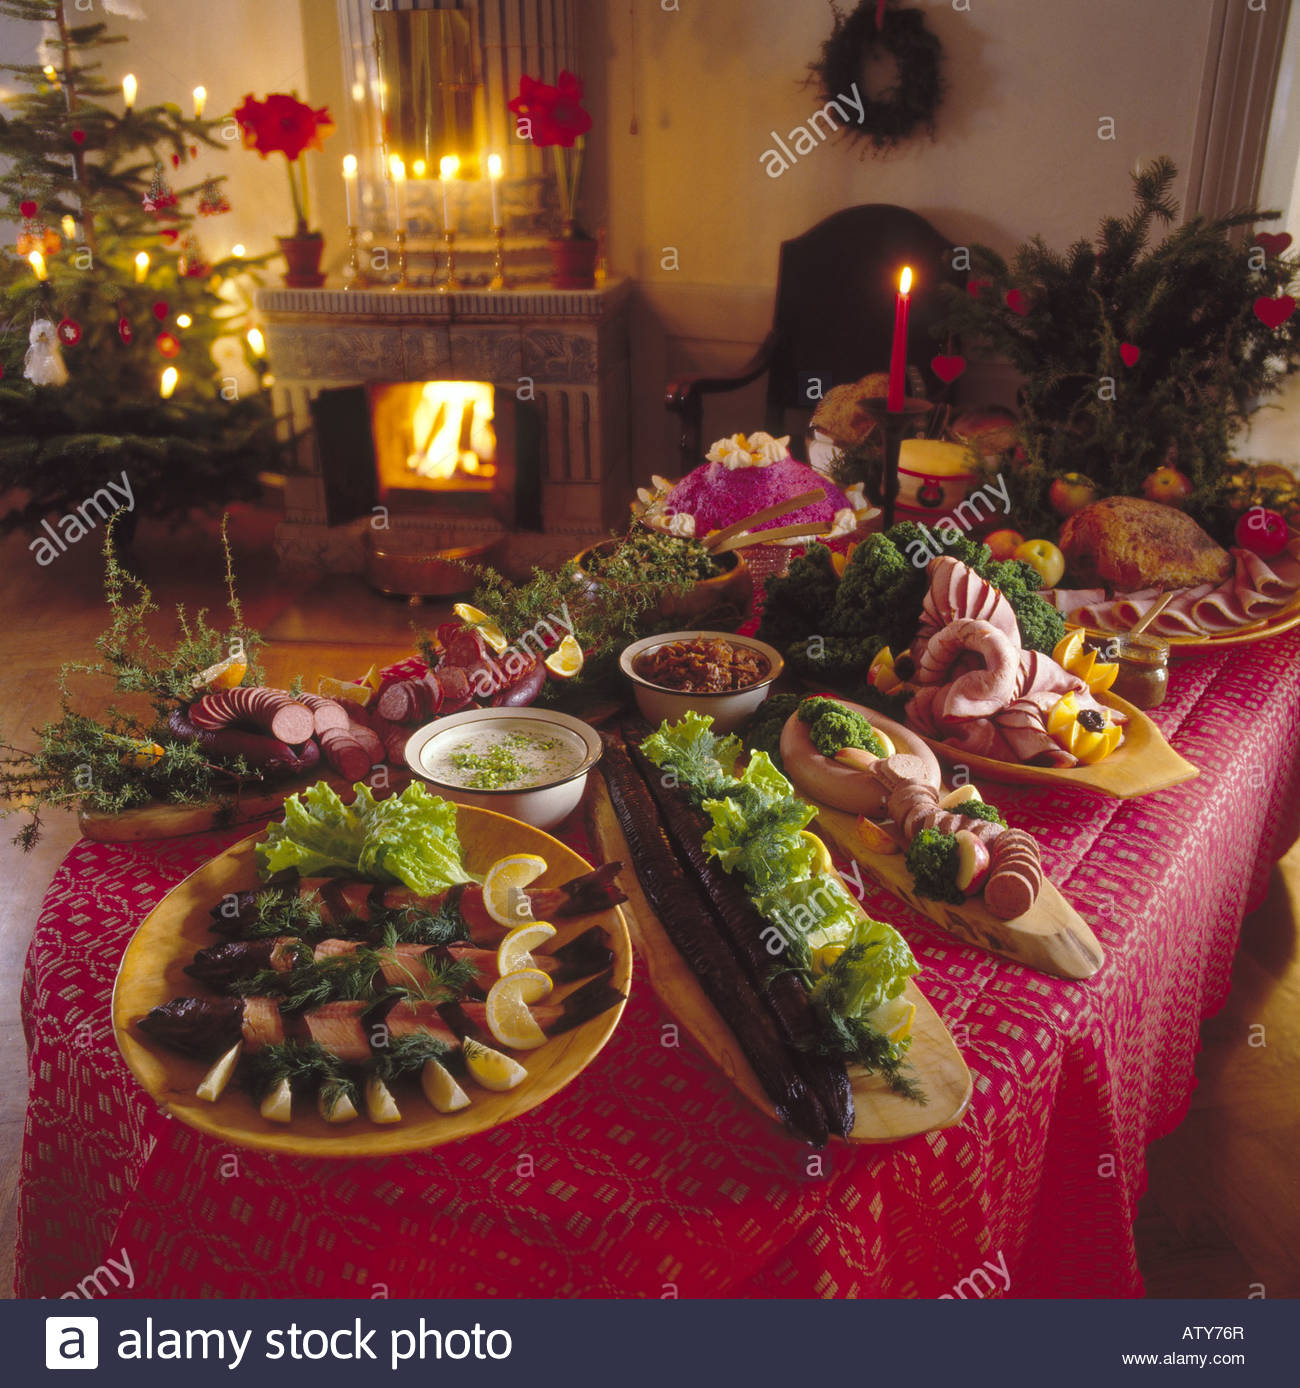 Christmas Food Decorations On Dinner Table Stock Photo